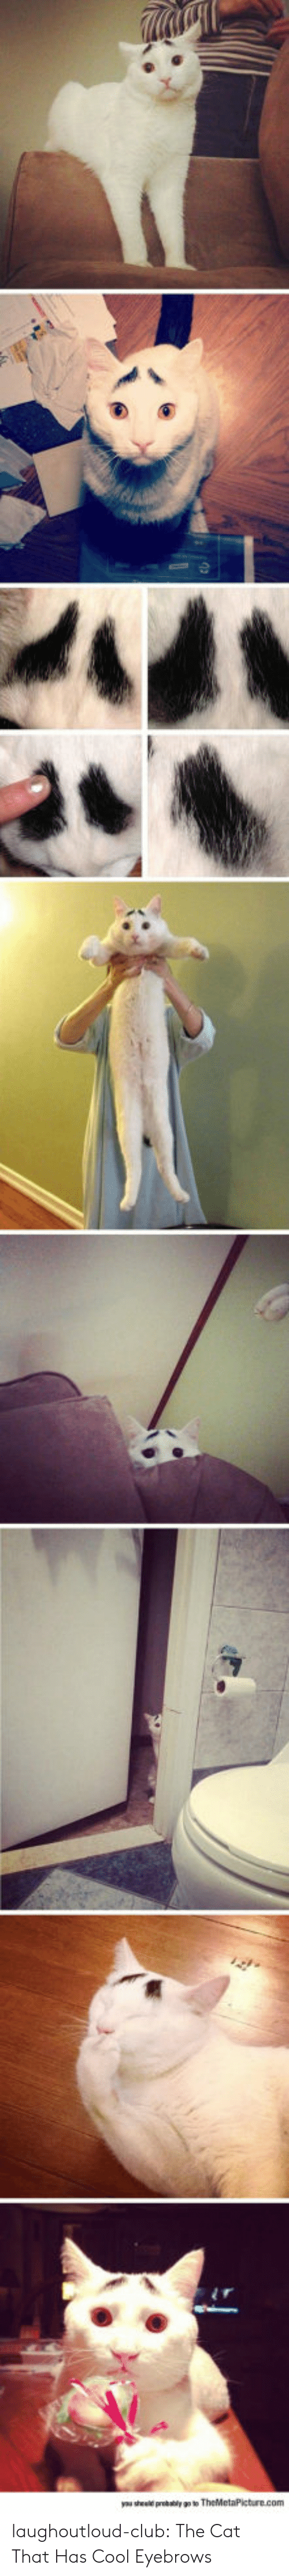 Club, Tumblr, and Blog: laughoutloud-club:  The Cat That Has Cool Eyebrows